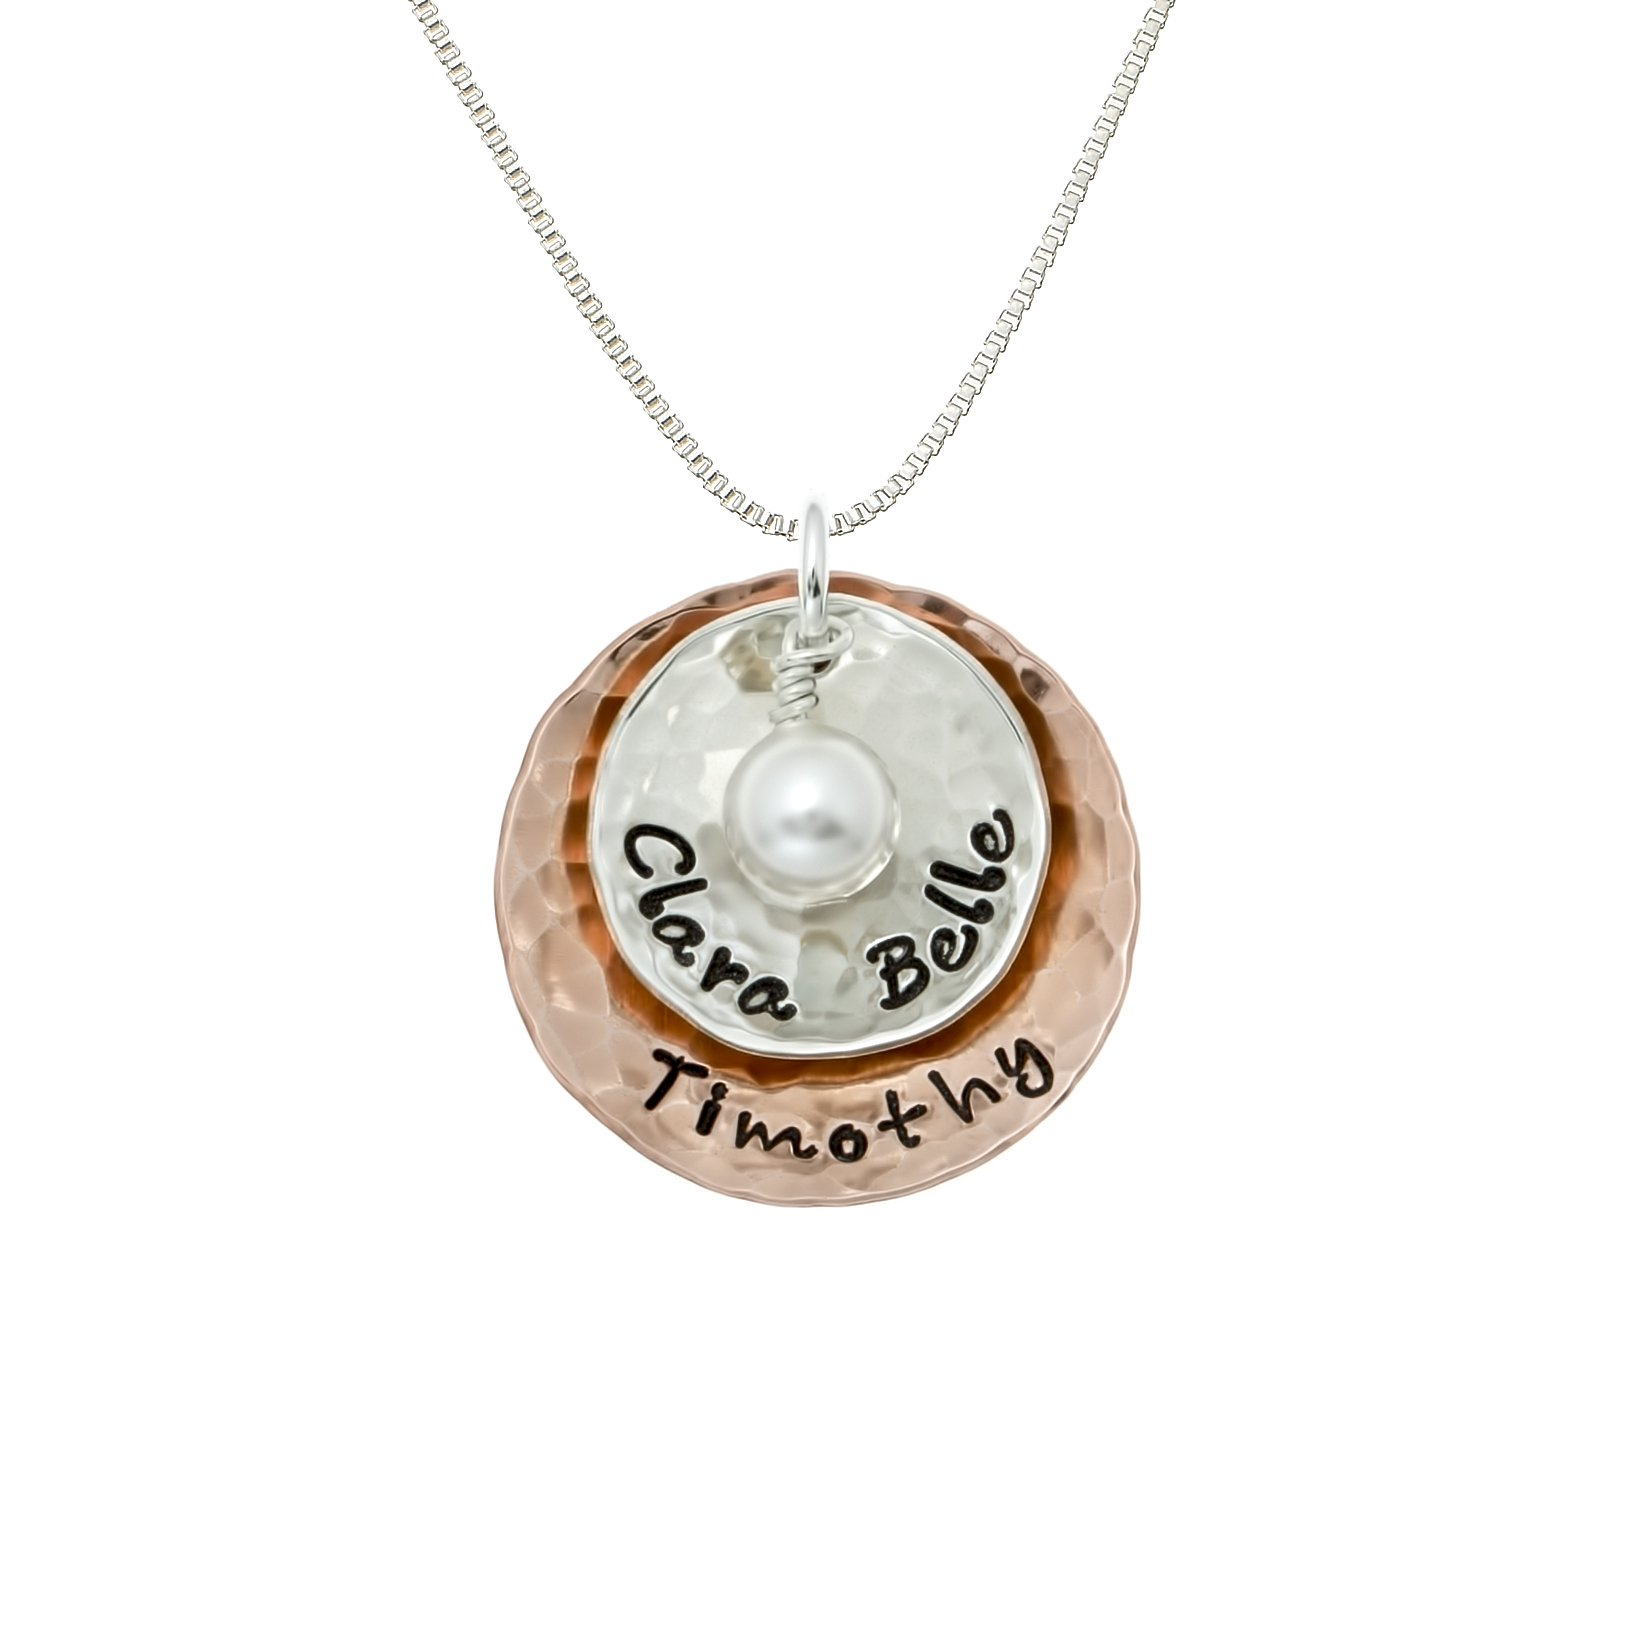 Deux Amore Multi-Tone Two Disc Necklace Personalized on Sterling Silver and Rose Gold Plated Discs with your Choice of Names. Includes Swarovski Pearl. Hand finished and Includes 925 Chain